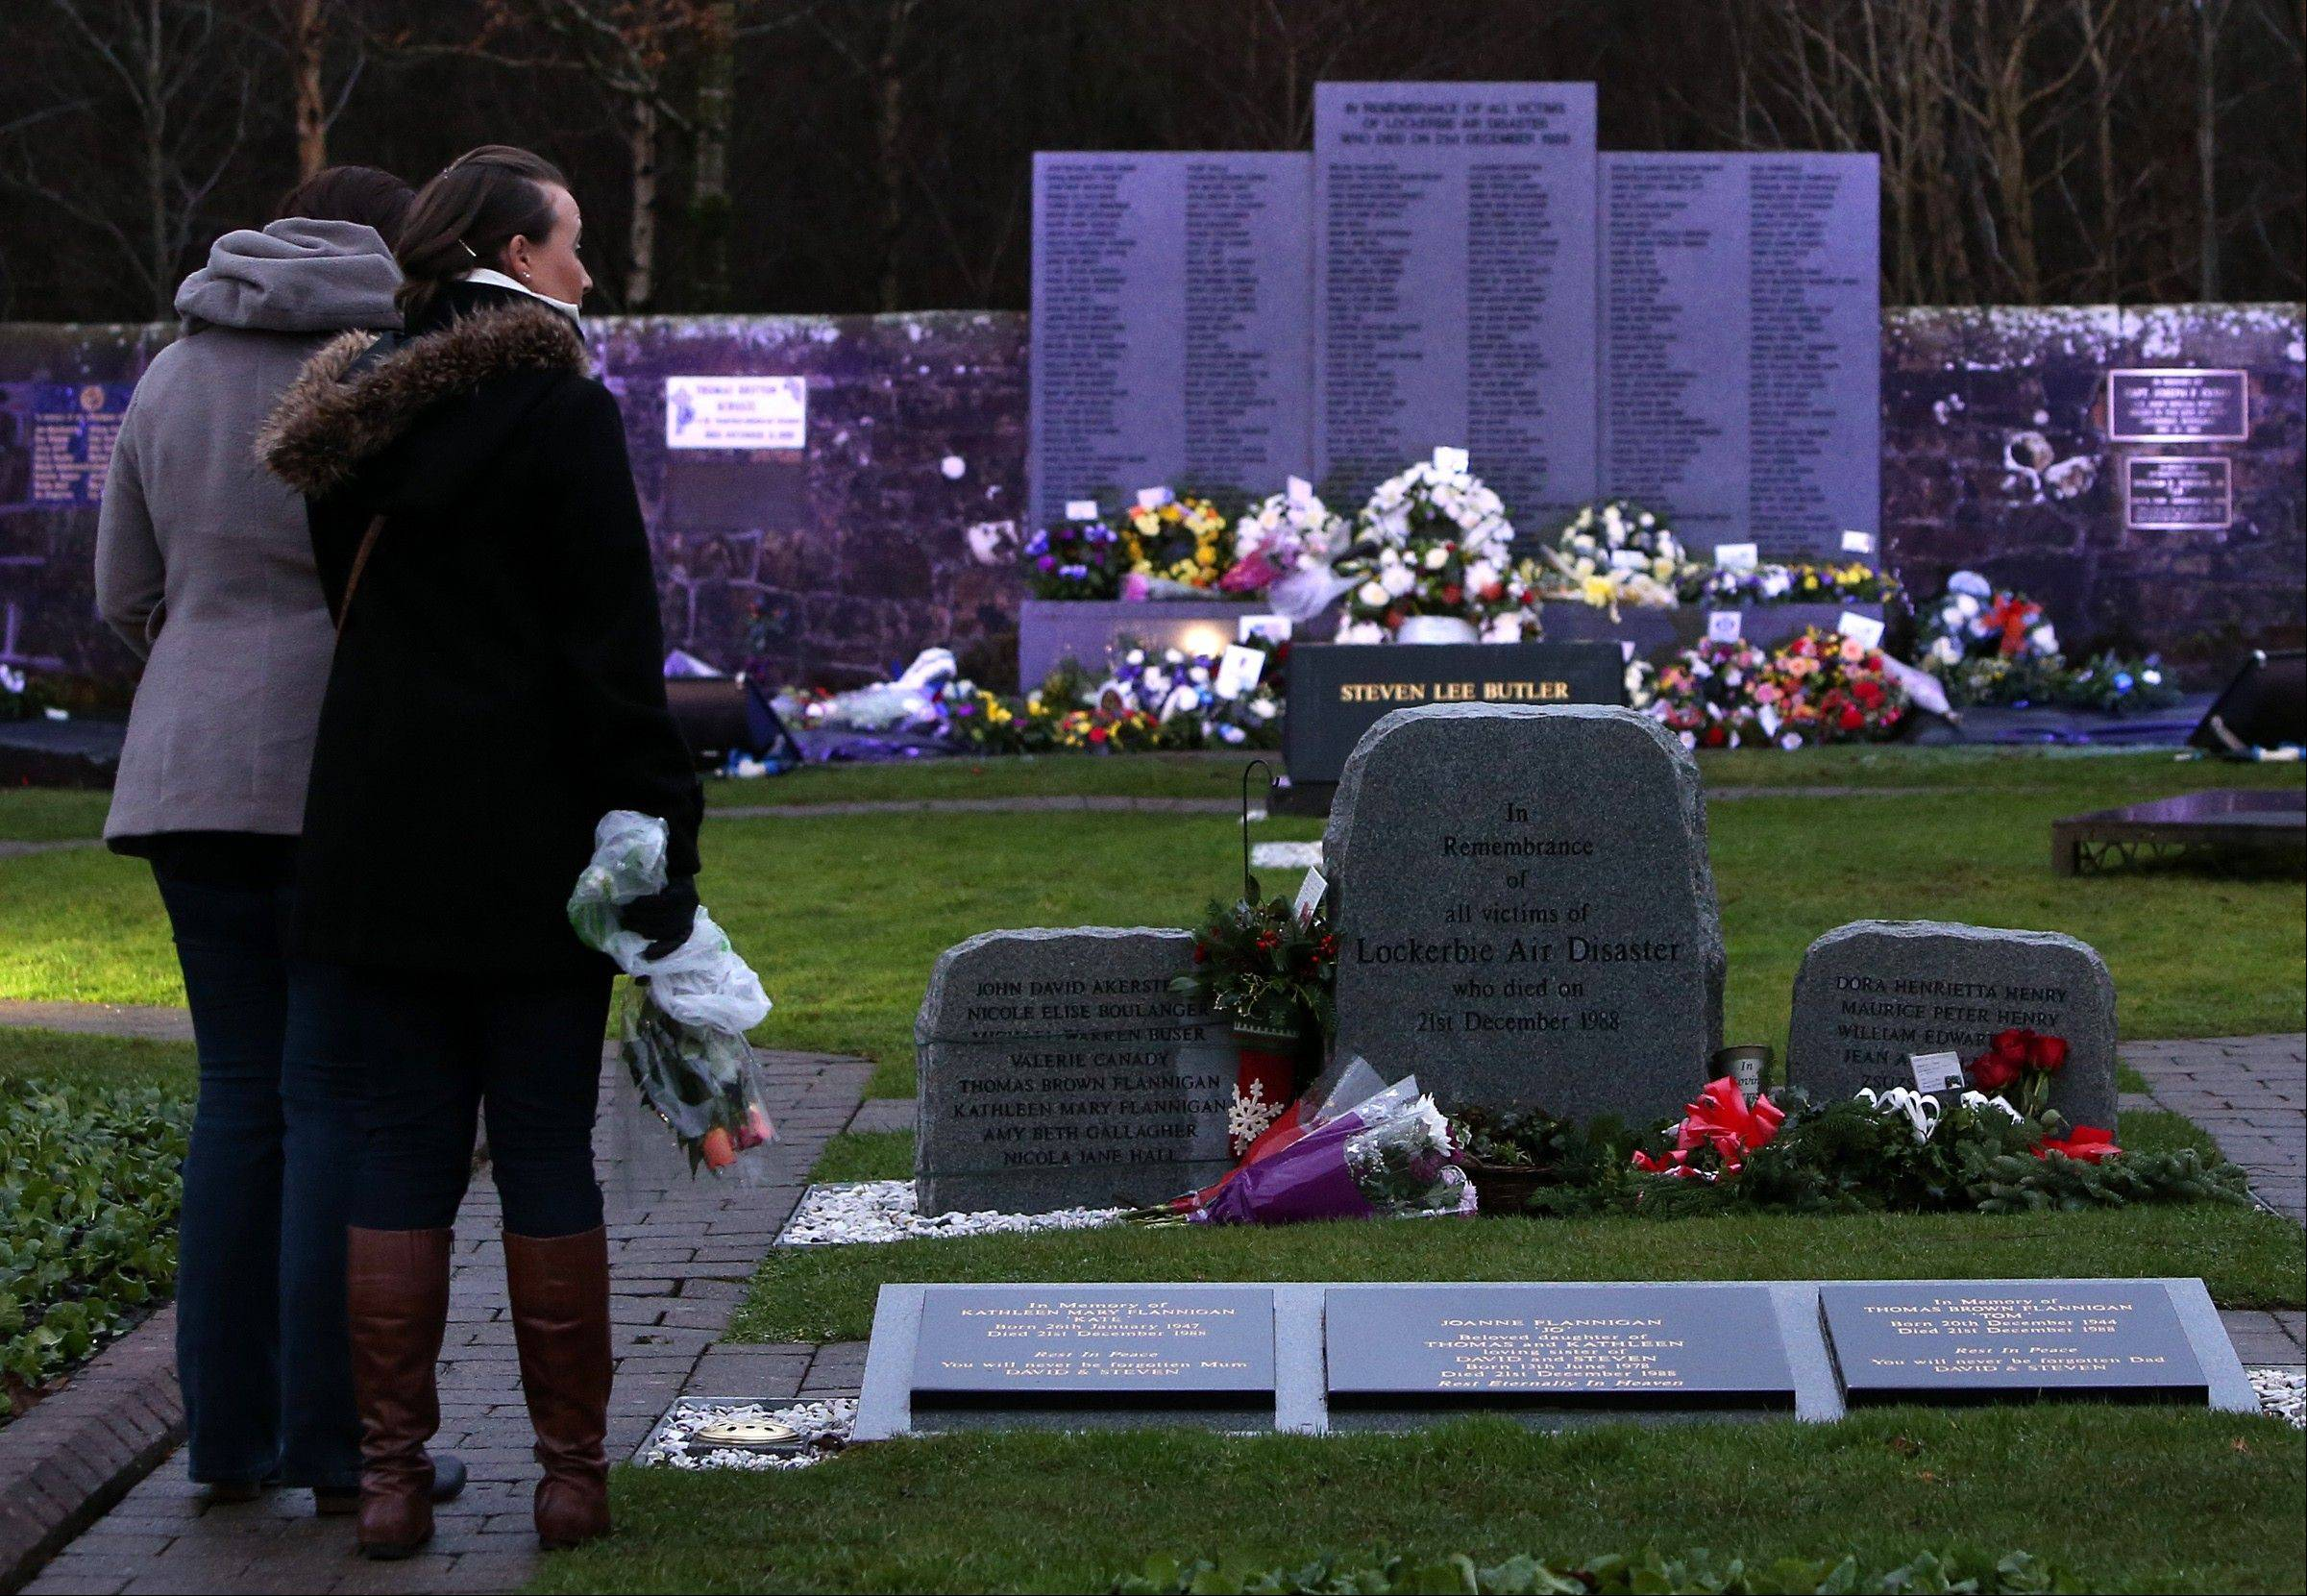 Associated PressMembers of the public view the scene at the main memorial stone in memory of the Lockerbie victims of Pan Am flight 103 bombing in the garden of remembrance at Dryfesdale Cemetery, near Lockerbie, Scotland, Saturday Dec. 21. Pan Am flight 103 was blown apart above the Scottish border town of Lockerbie on Dec. 21, 1988. All 269 passengers and crew, on the Pan Am flight and 11 people on the ground were killed in the bombing.